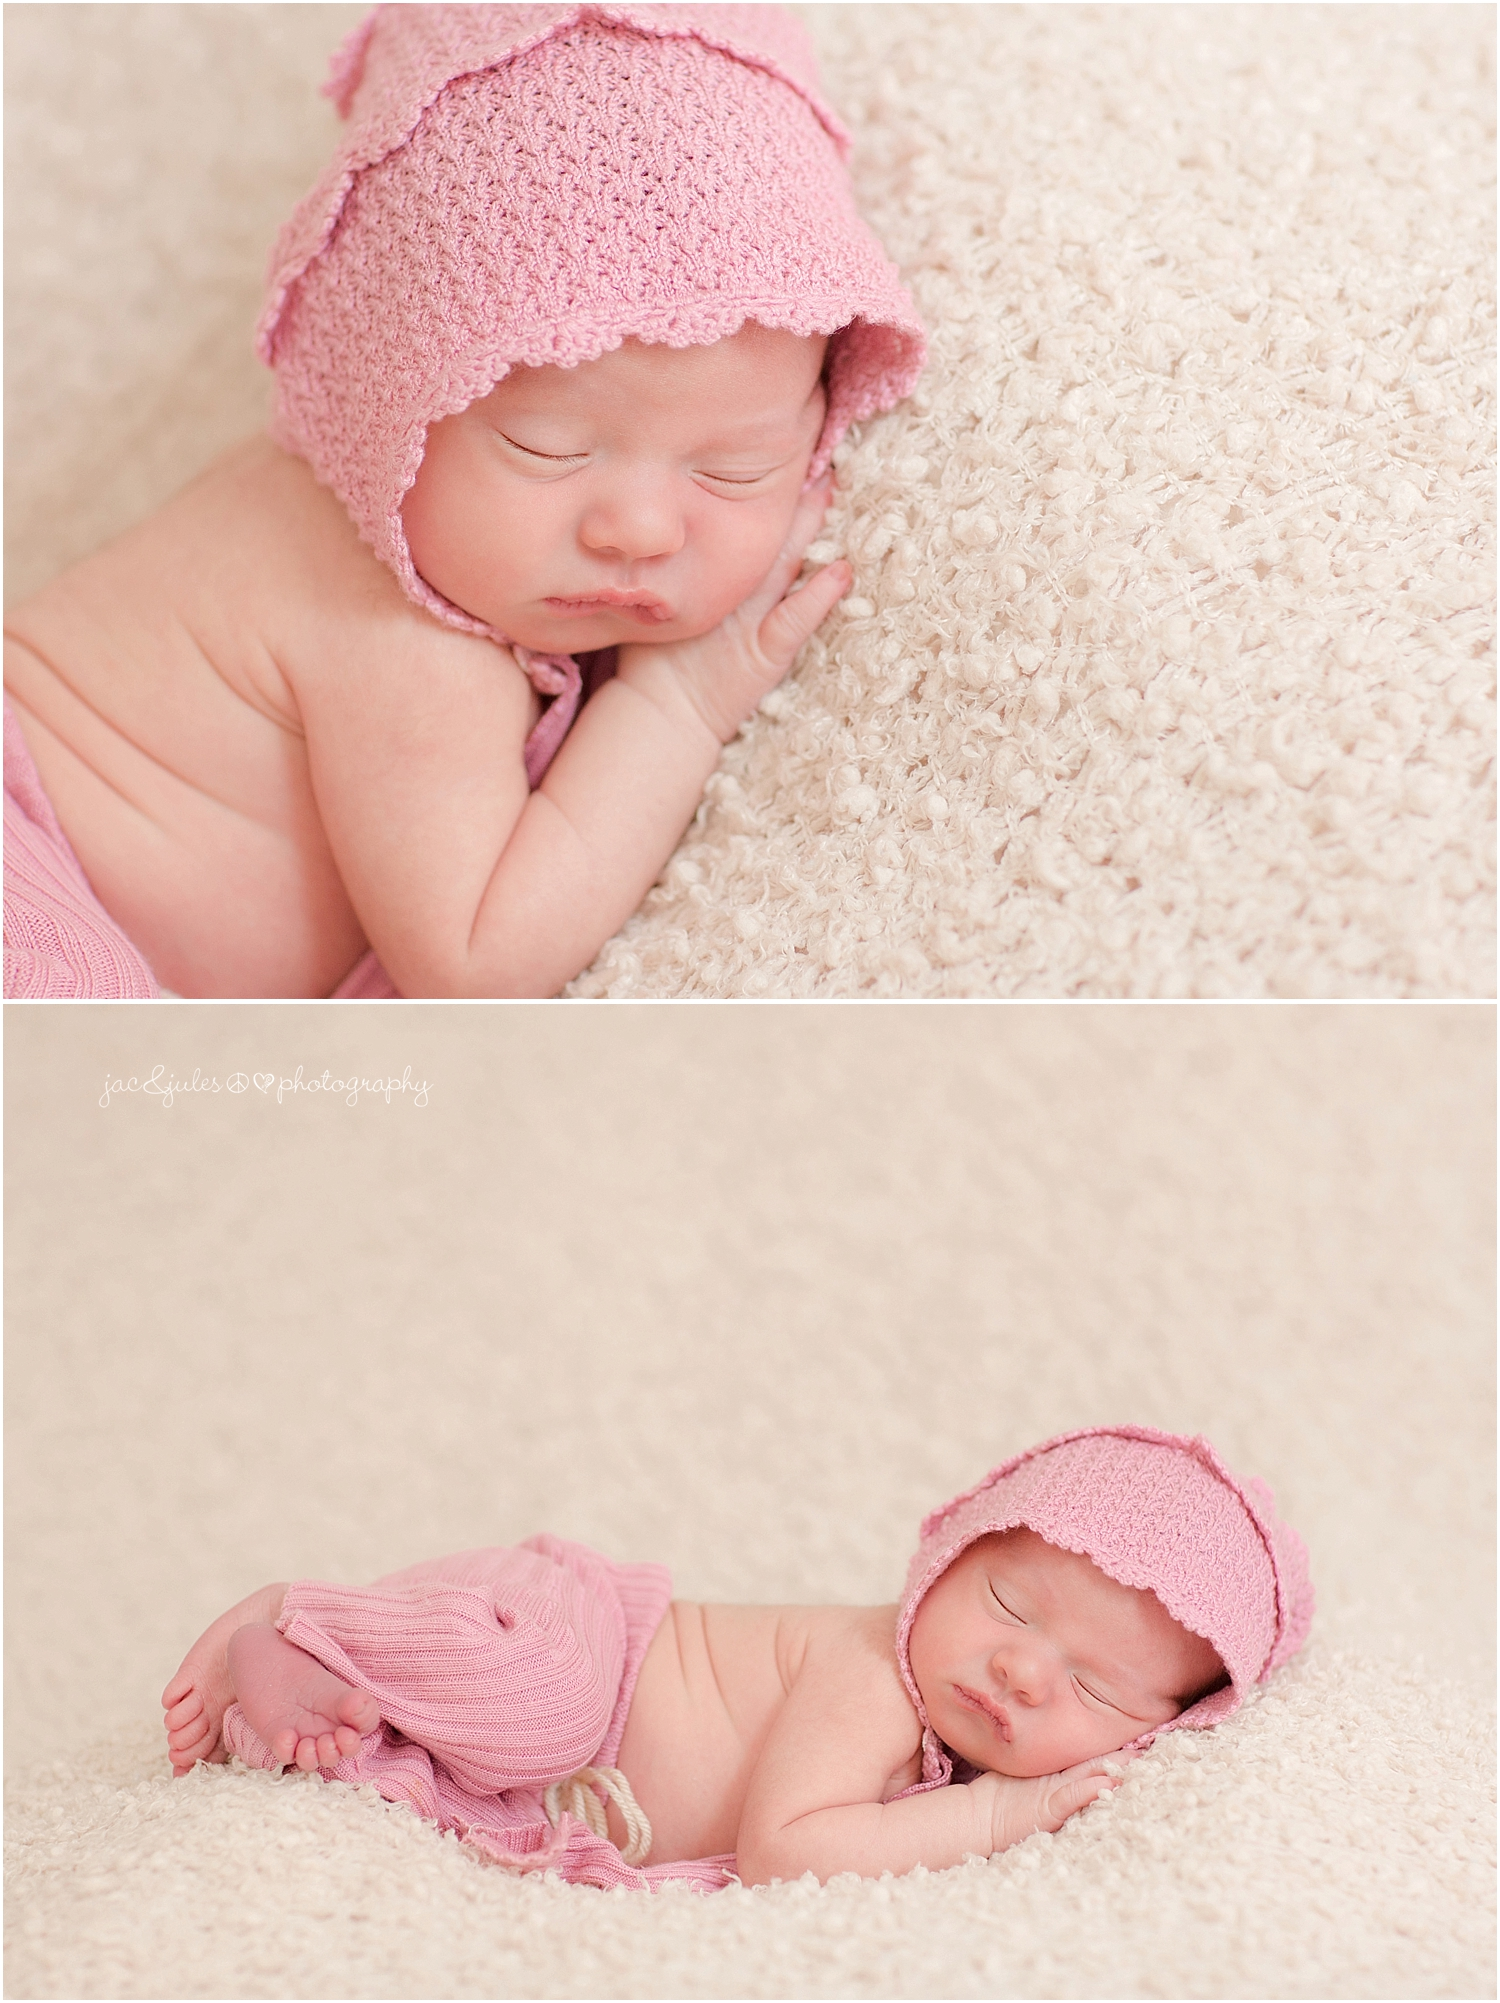 jacnjules photographs newborn baby girl in a bonnet in their home in nnj